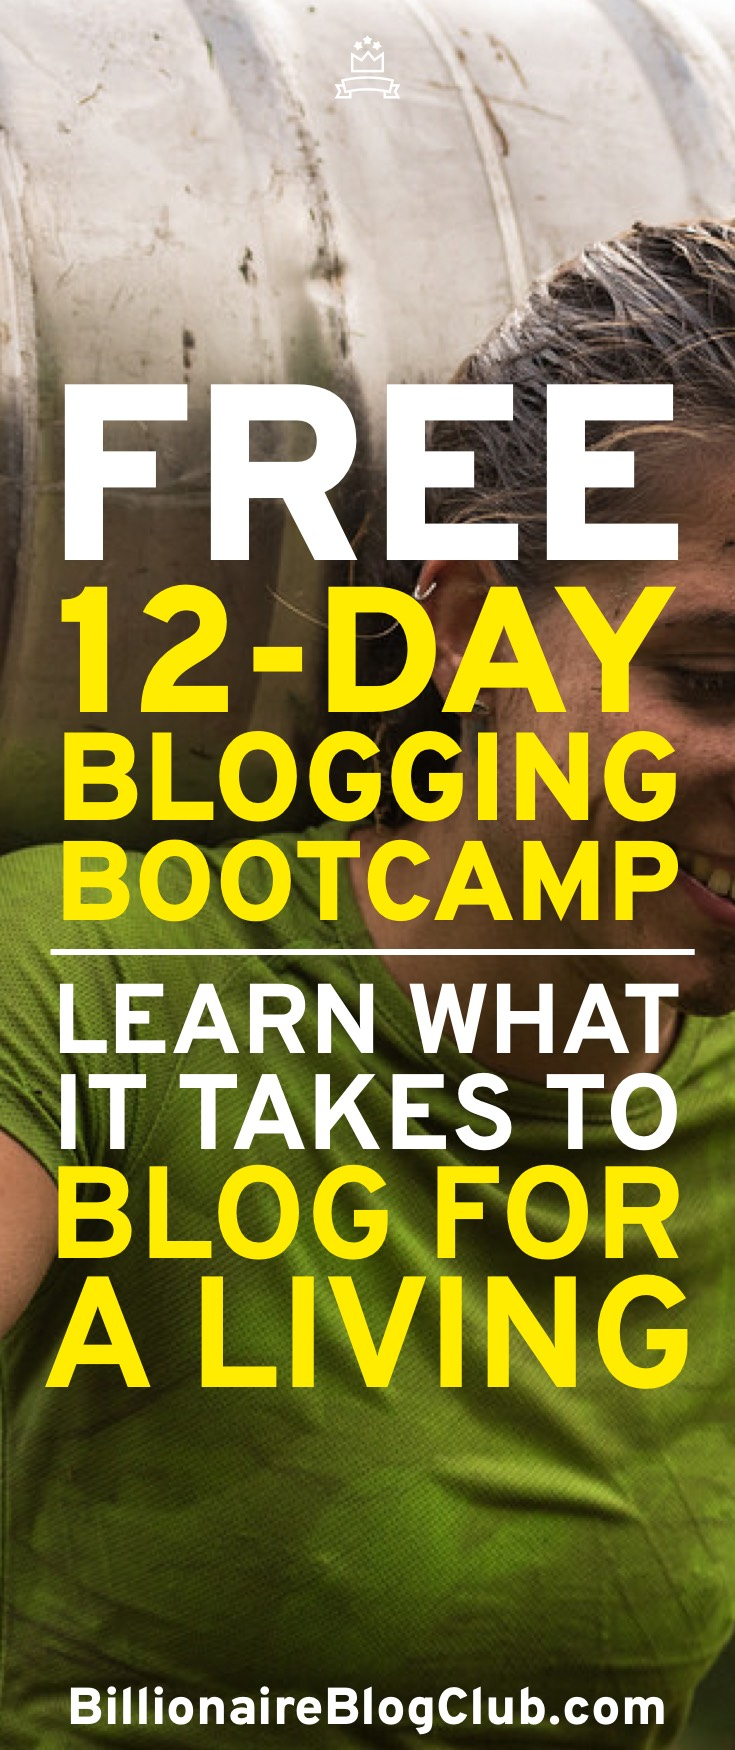 Free 12-Day Blogging Bootcamp